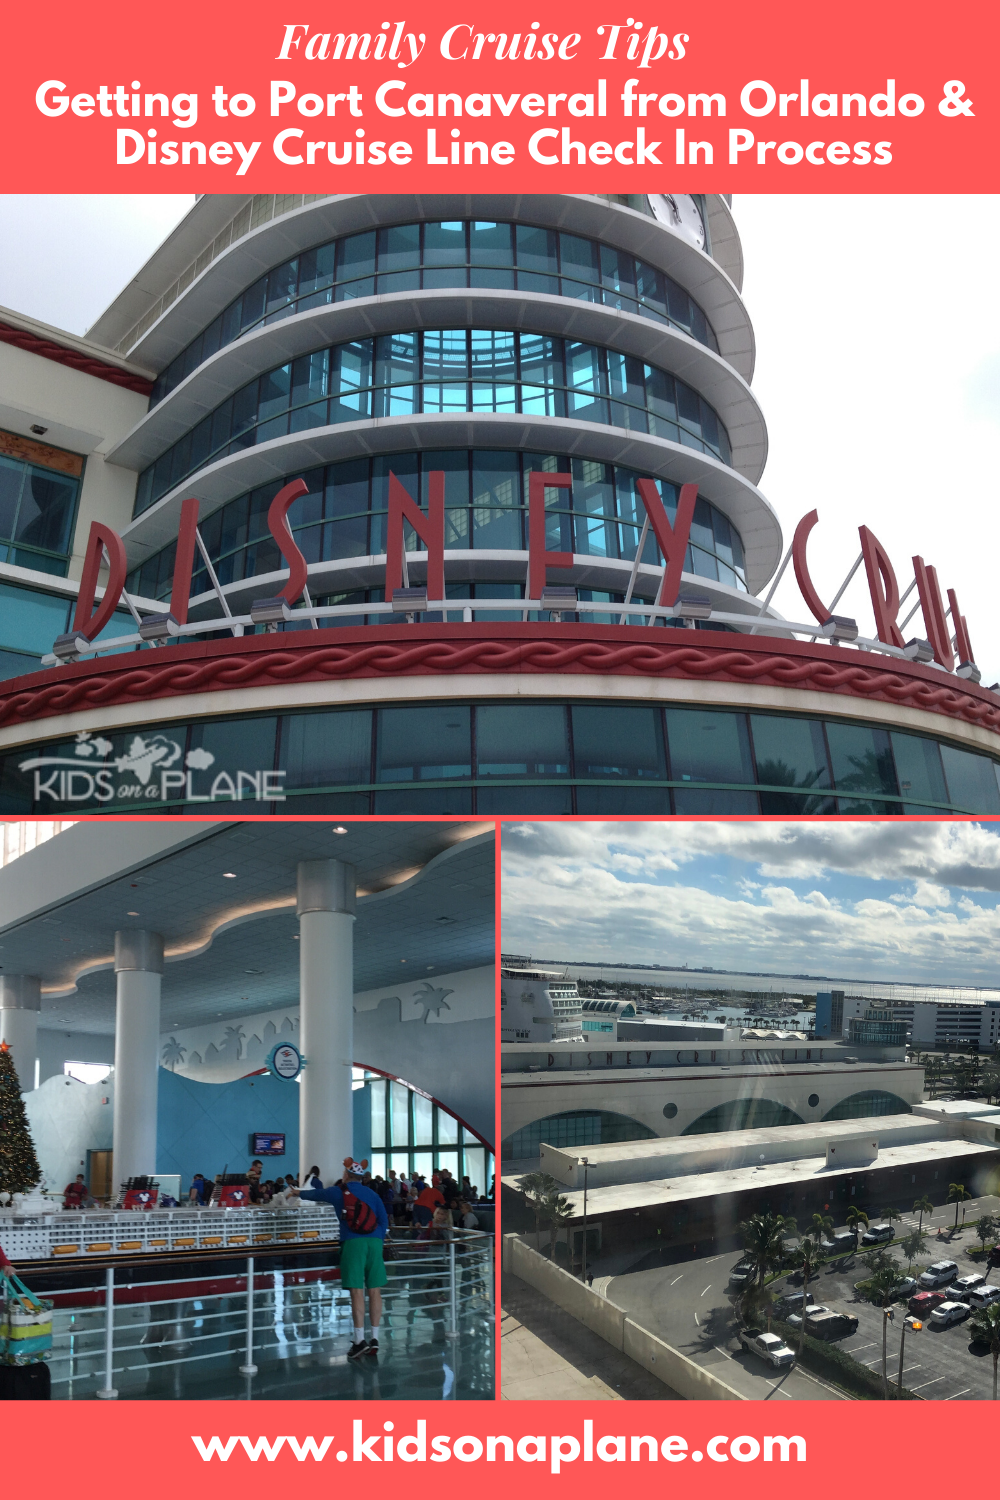 How to get to Port Canaveral from Orlando and Disney Cruise Line Check In Tips